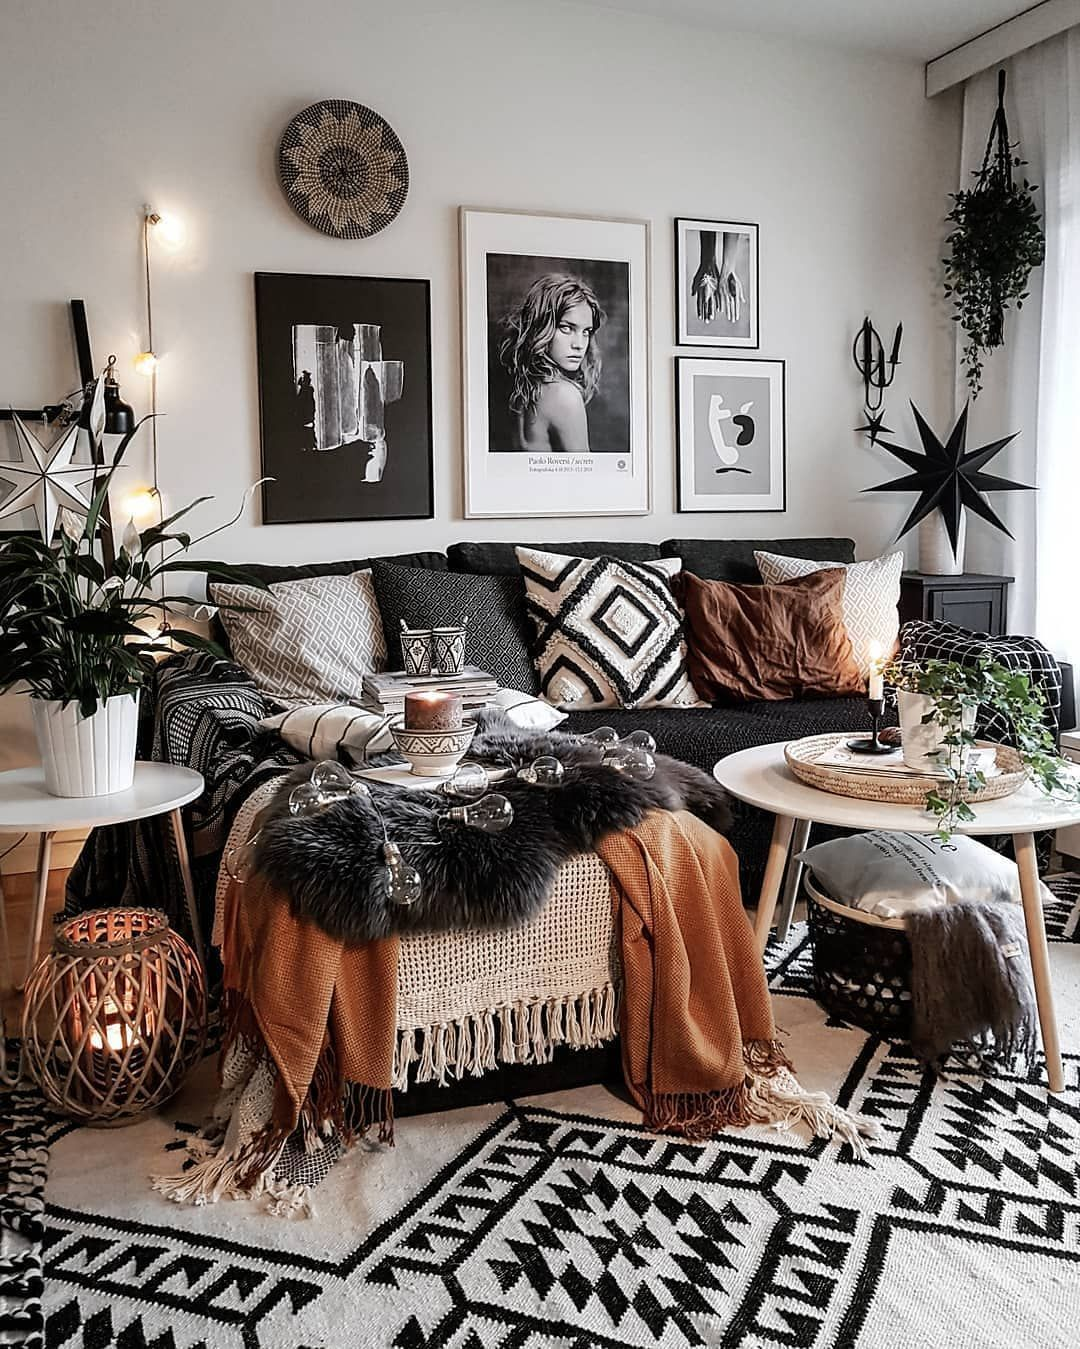 cozi homes on Instagram Were just going to spend all day under these blanke cozi homes auf Instagram Wir werden nur den ganzen Tag unter diesen Decken verbringen ist das...